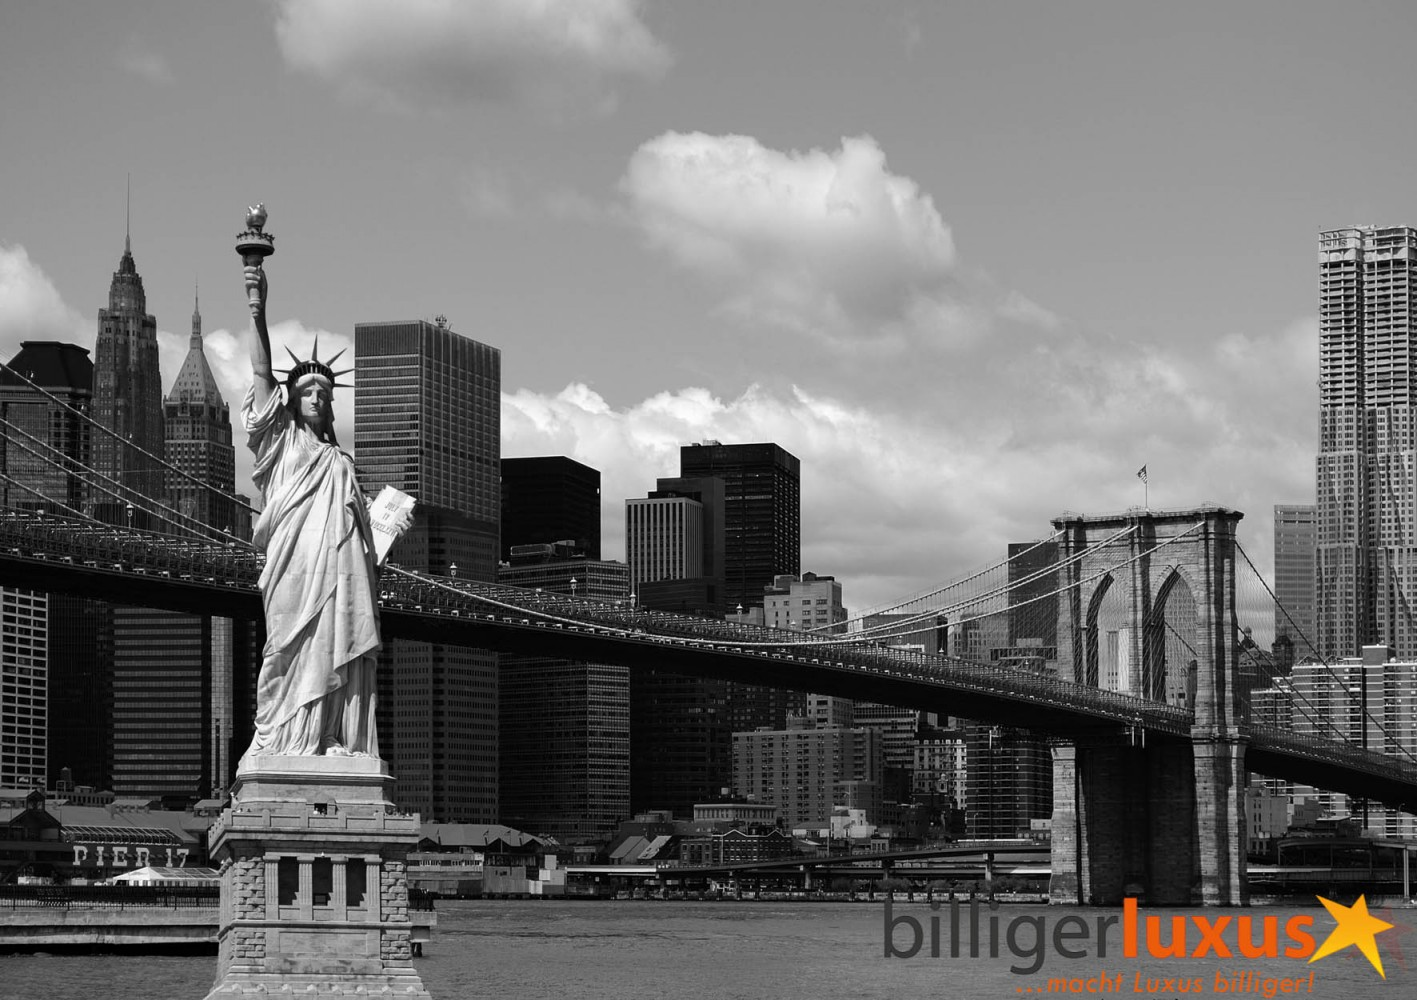 Wall mural wallpaper brooklyn bridge statue of liberty new for Brooklyn bridge mural wallpaper